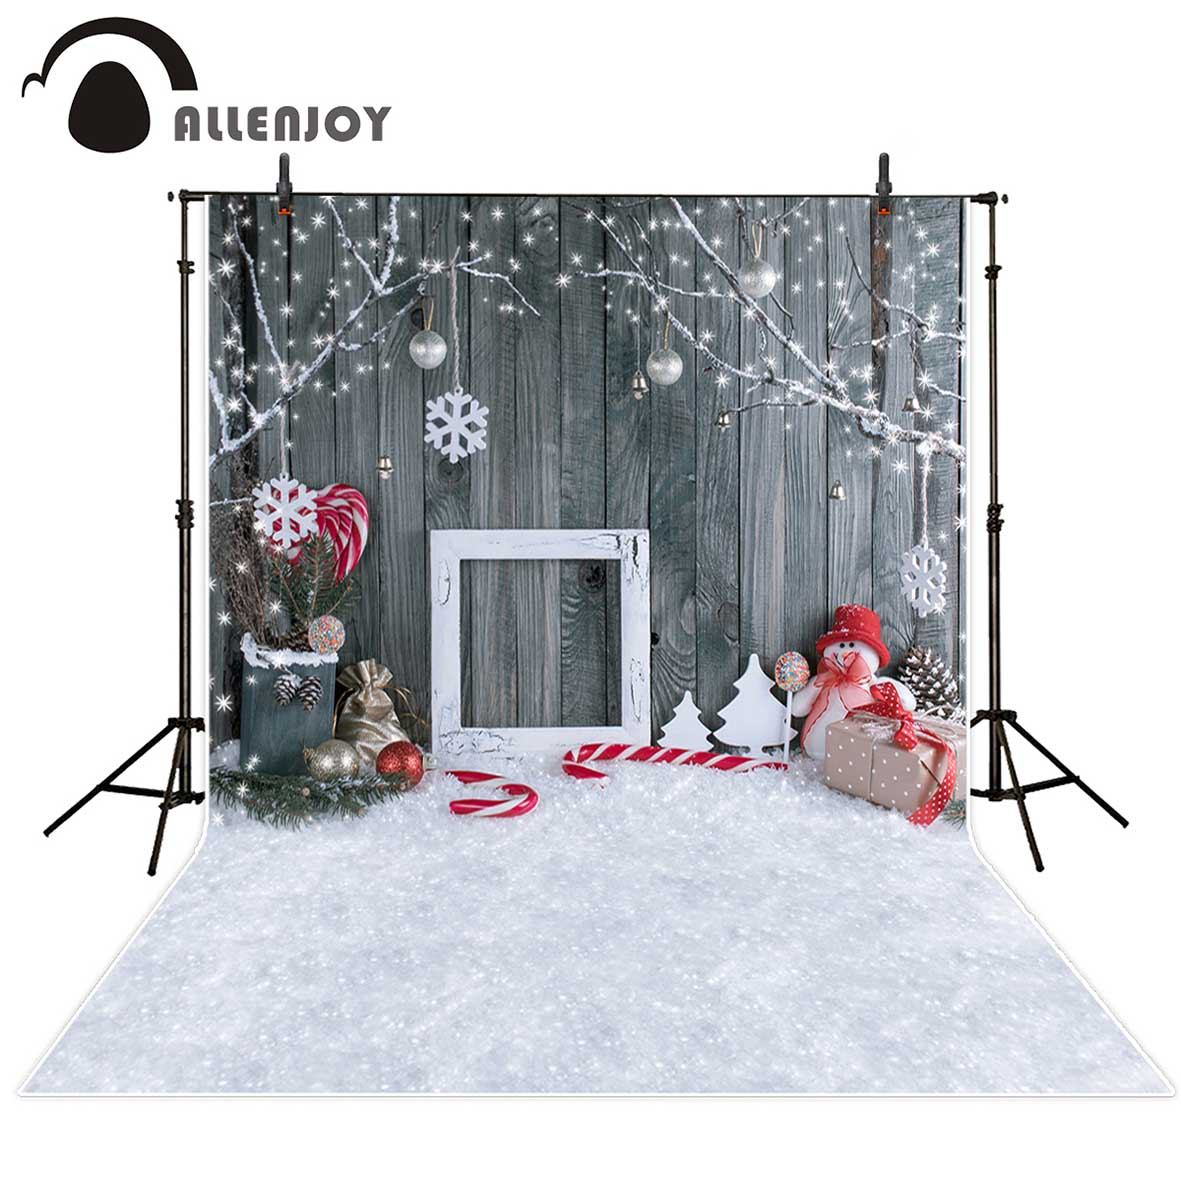 Allenjoy photographic background Christmas snowman gray woodwall snowflake backdrop photocall new photobooth vinyl photography allenjoy wedding custom photography backdrop photo studio wood party decor celebrate background photocall photobooth photocall